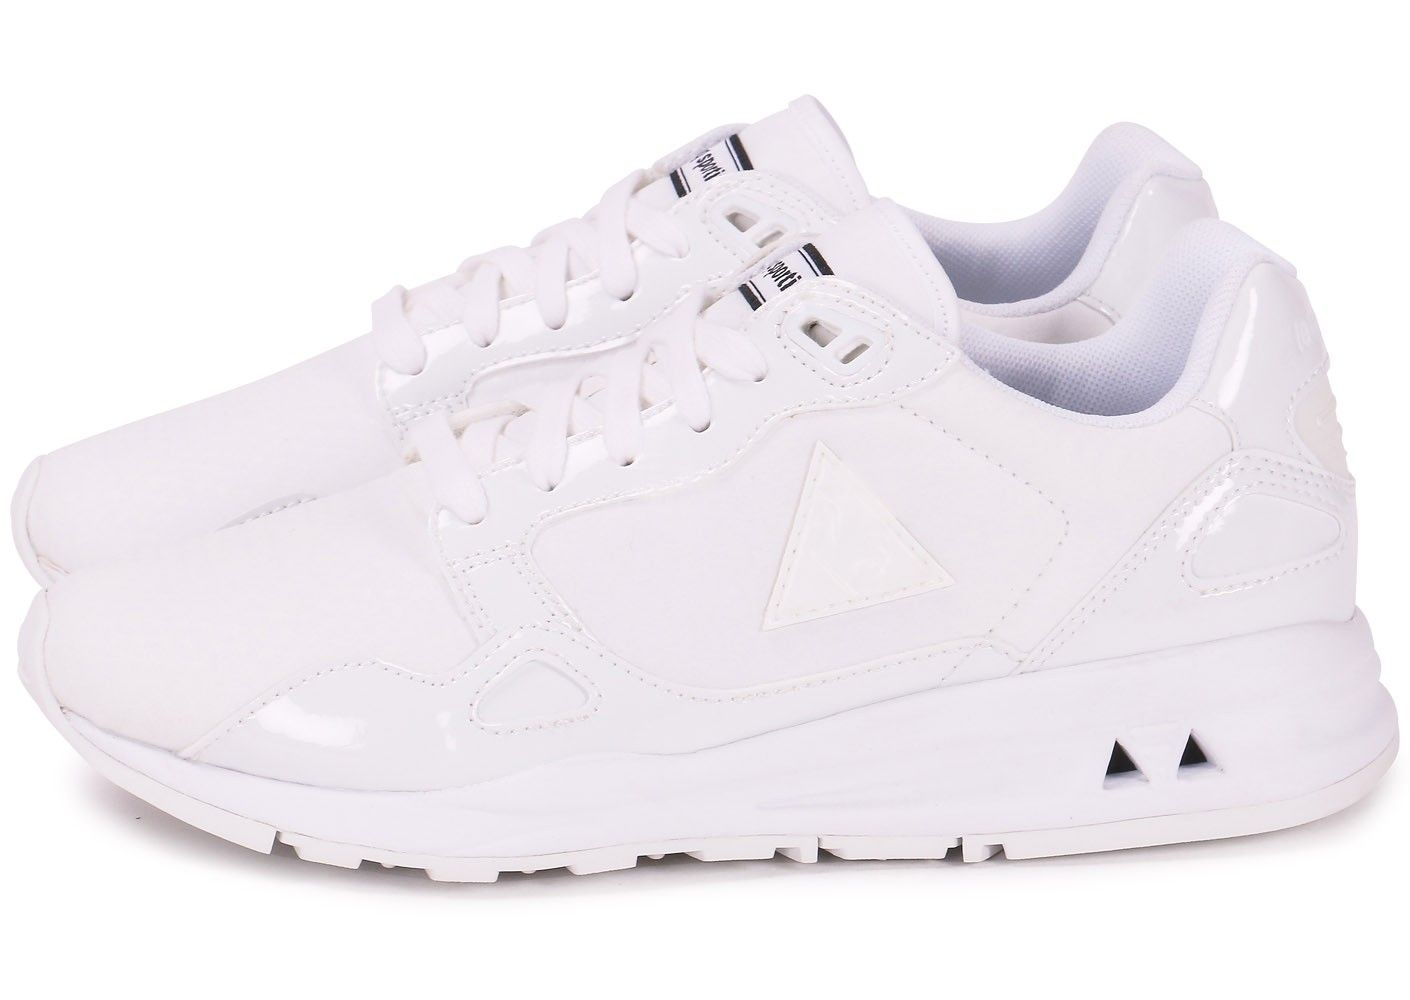 coq sportif homme lcs r900